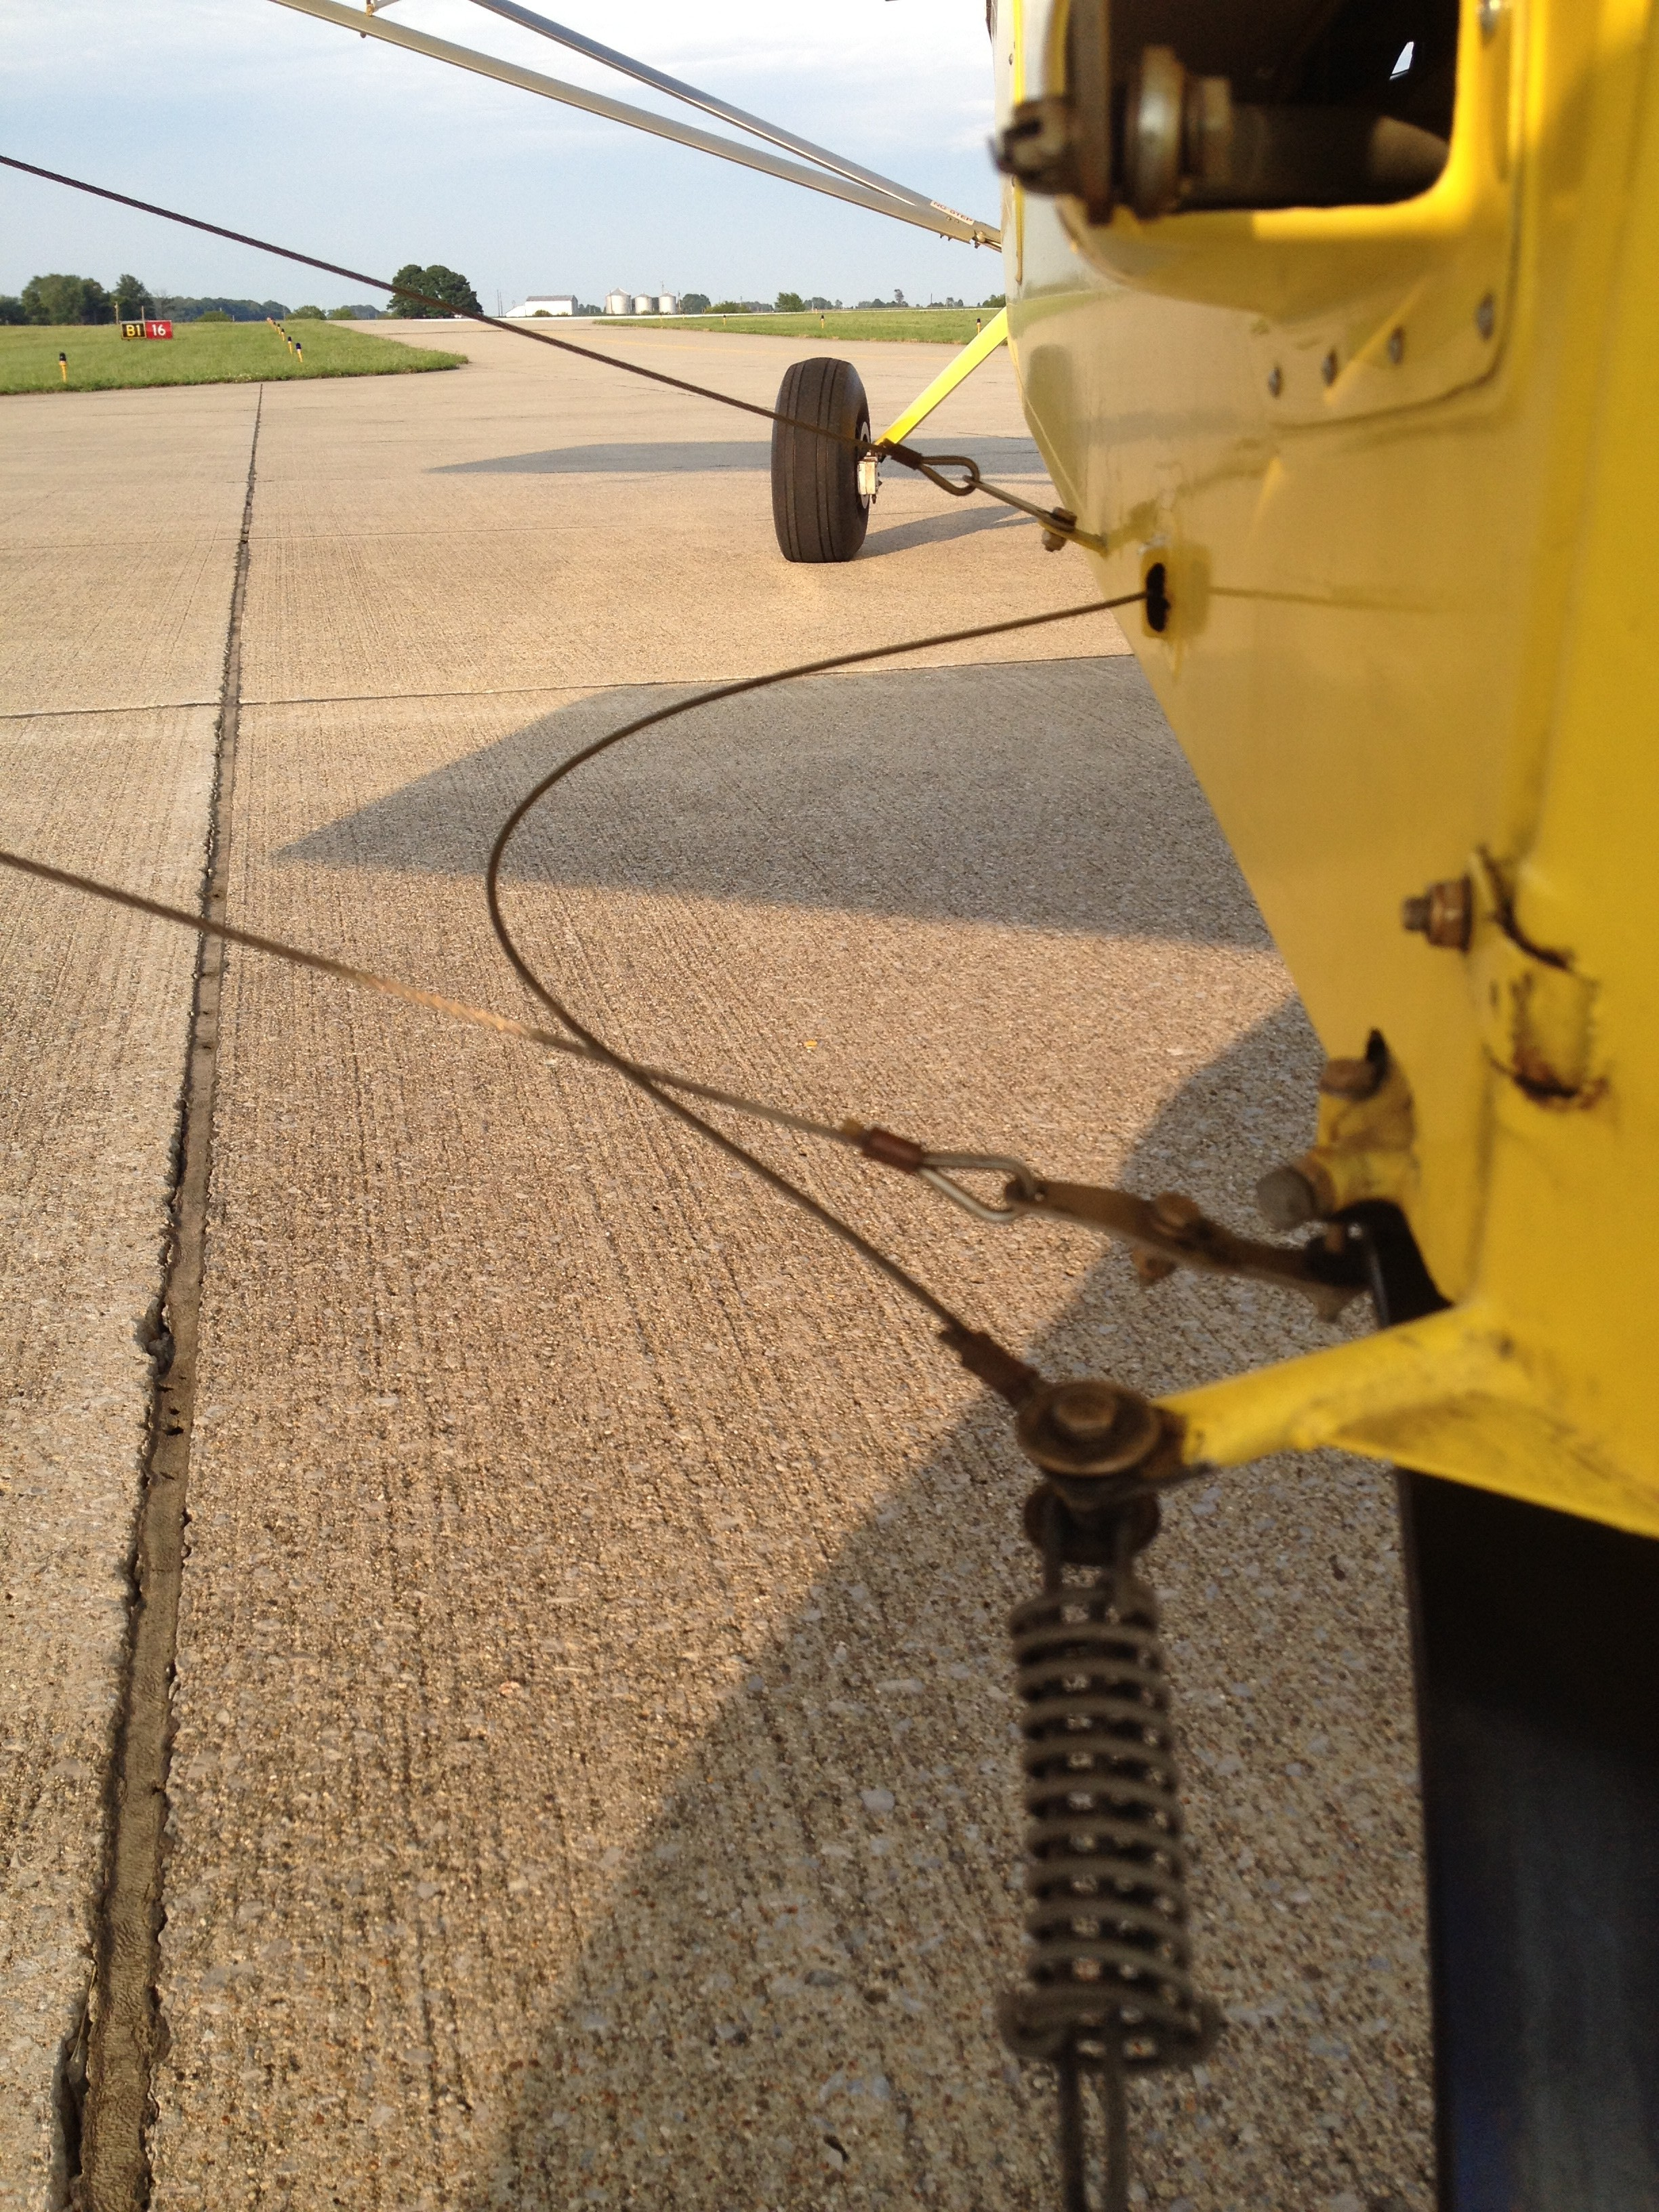 Rudder Cable Incident, Rans S-7